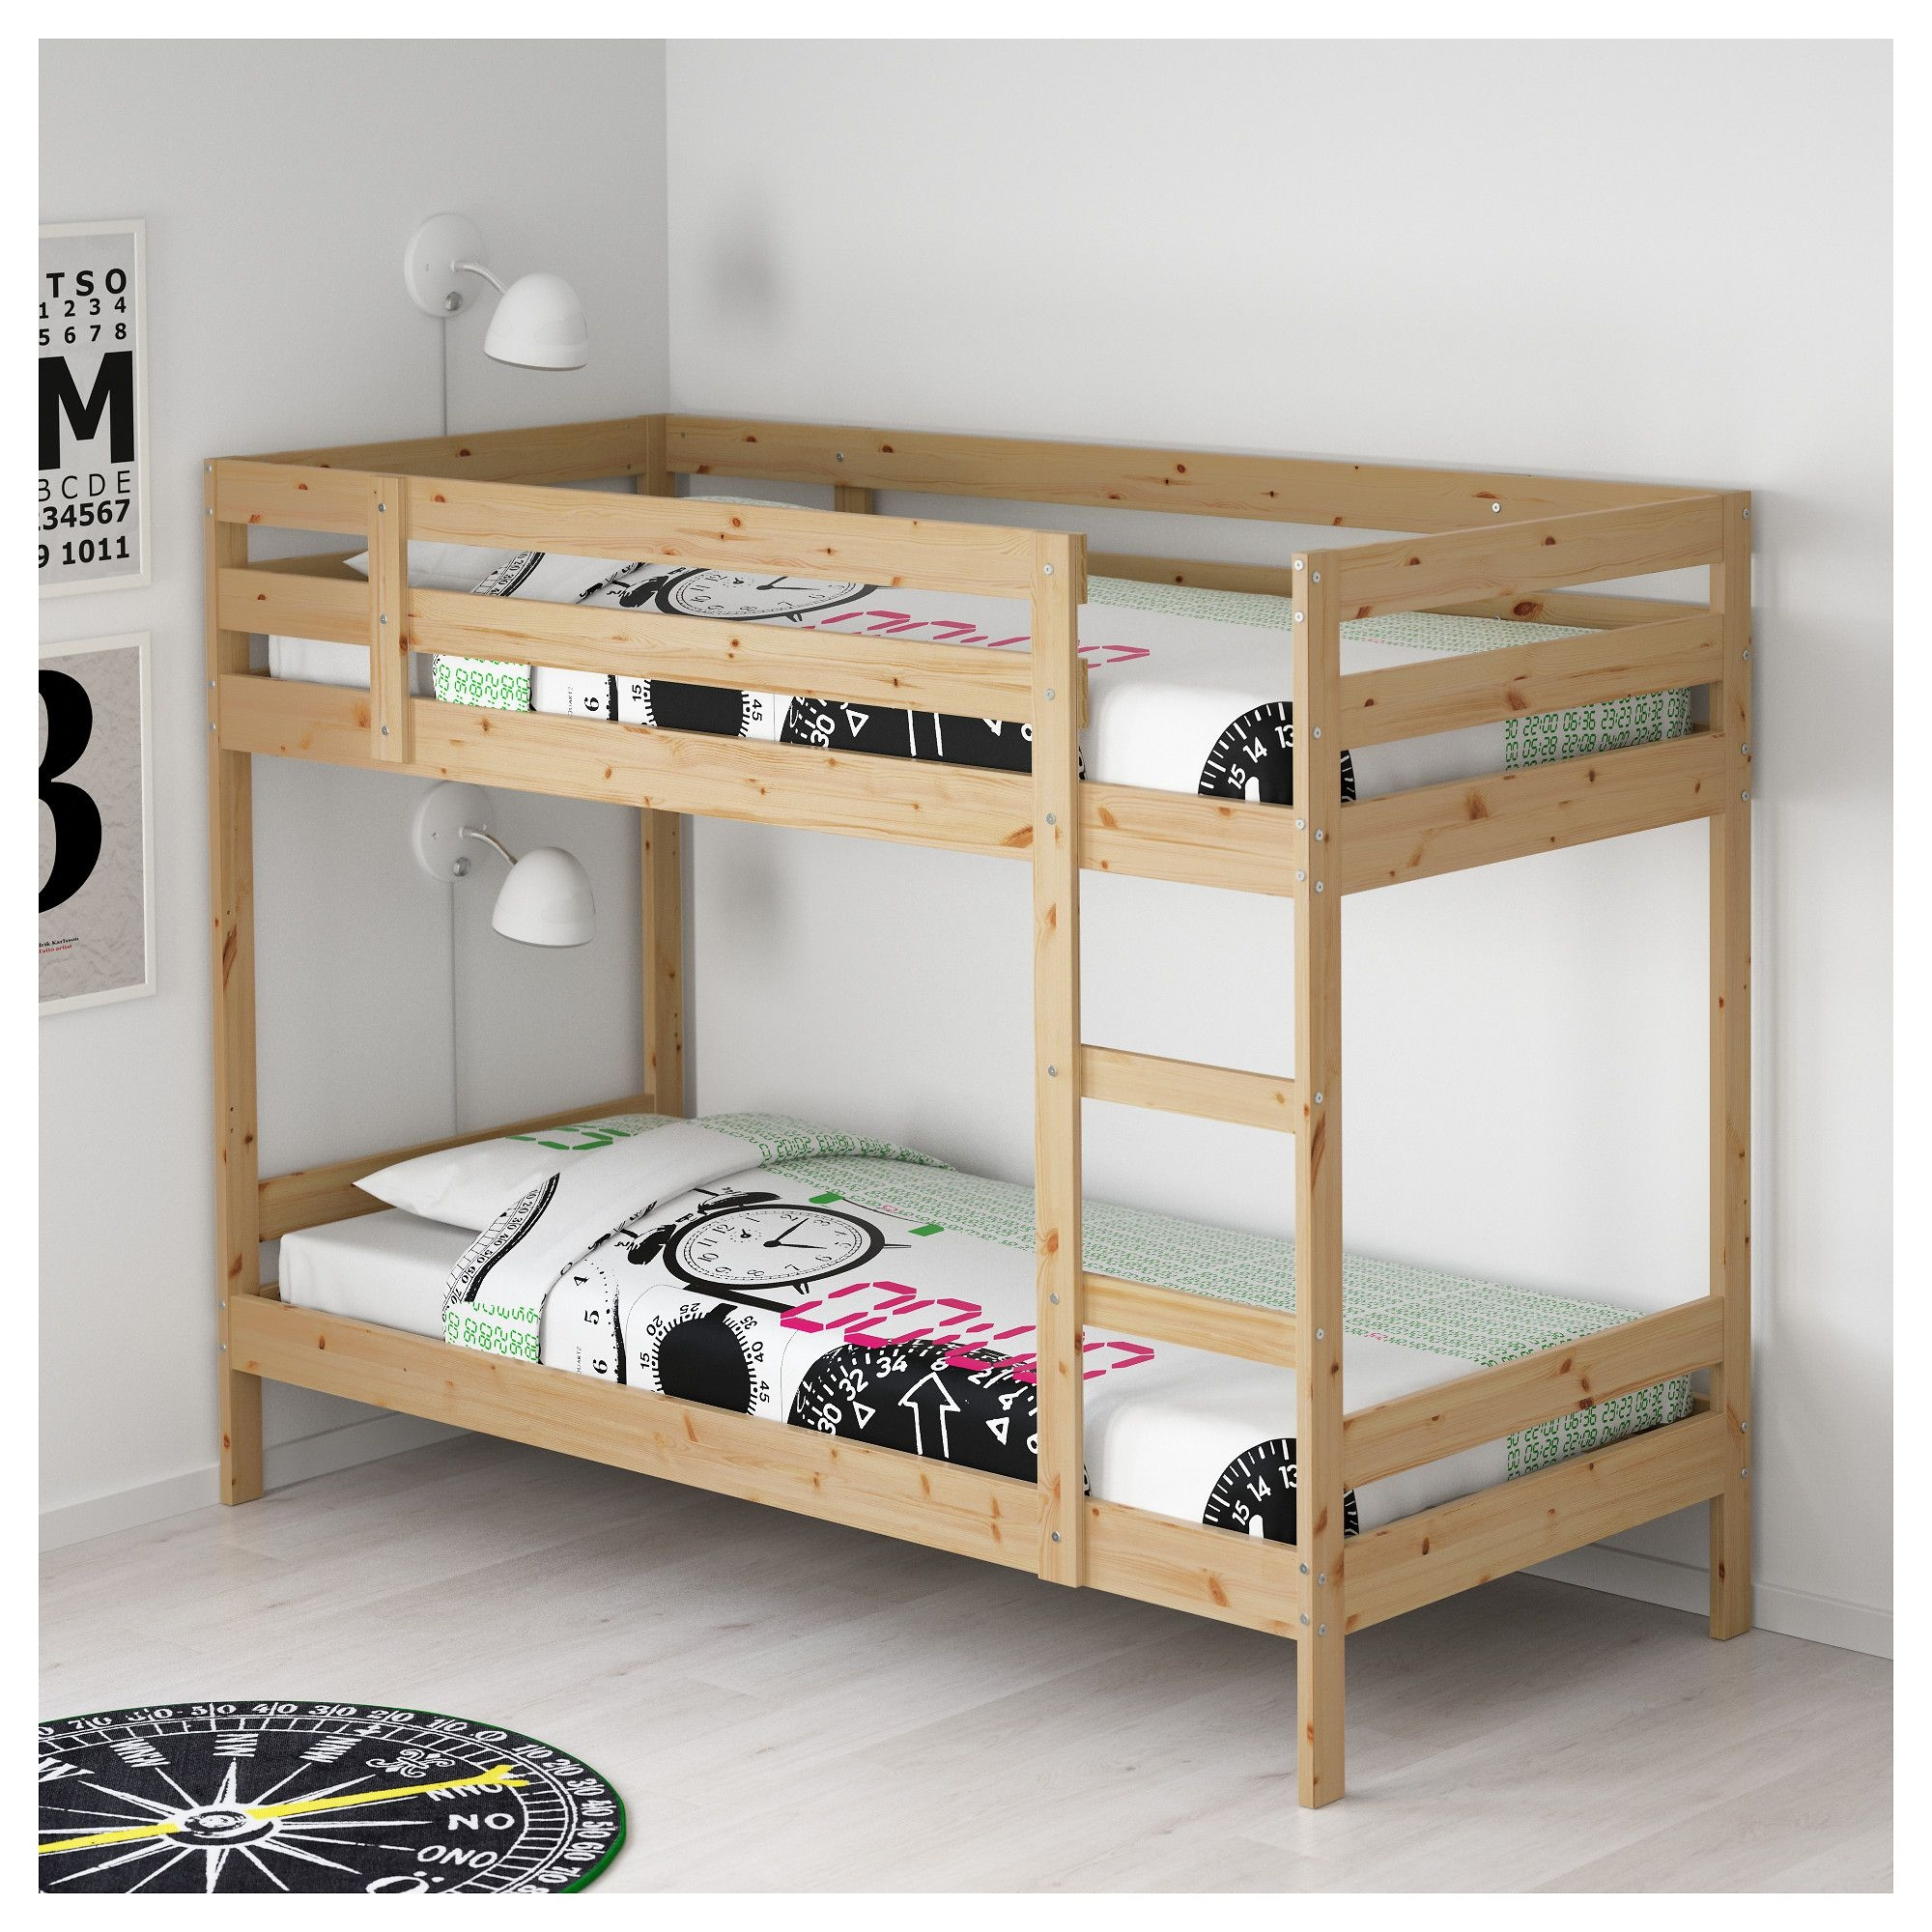 50 Ikea Bunk Beds You Ll Love In 2020